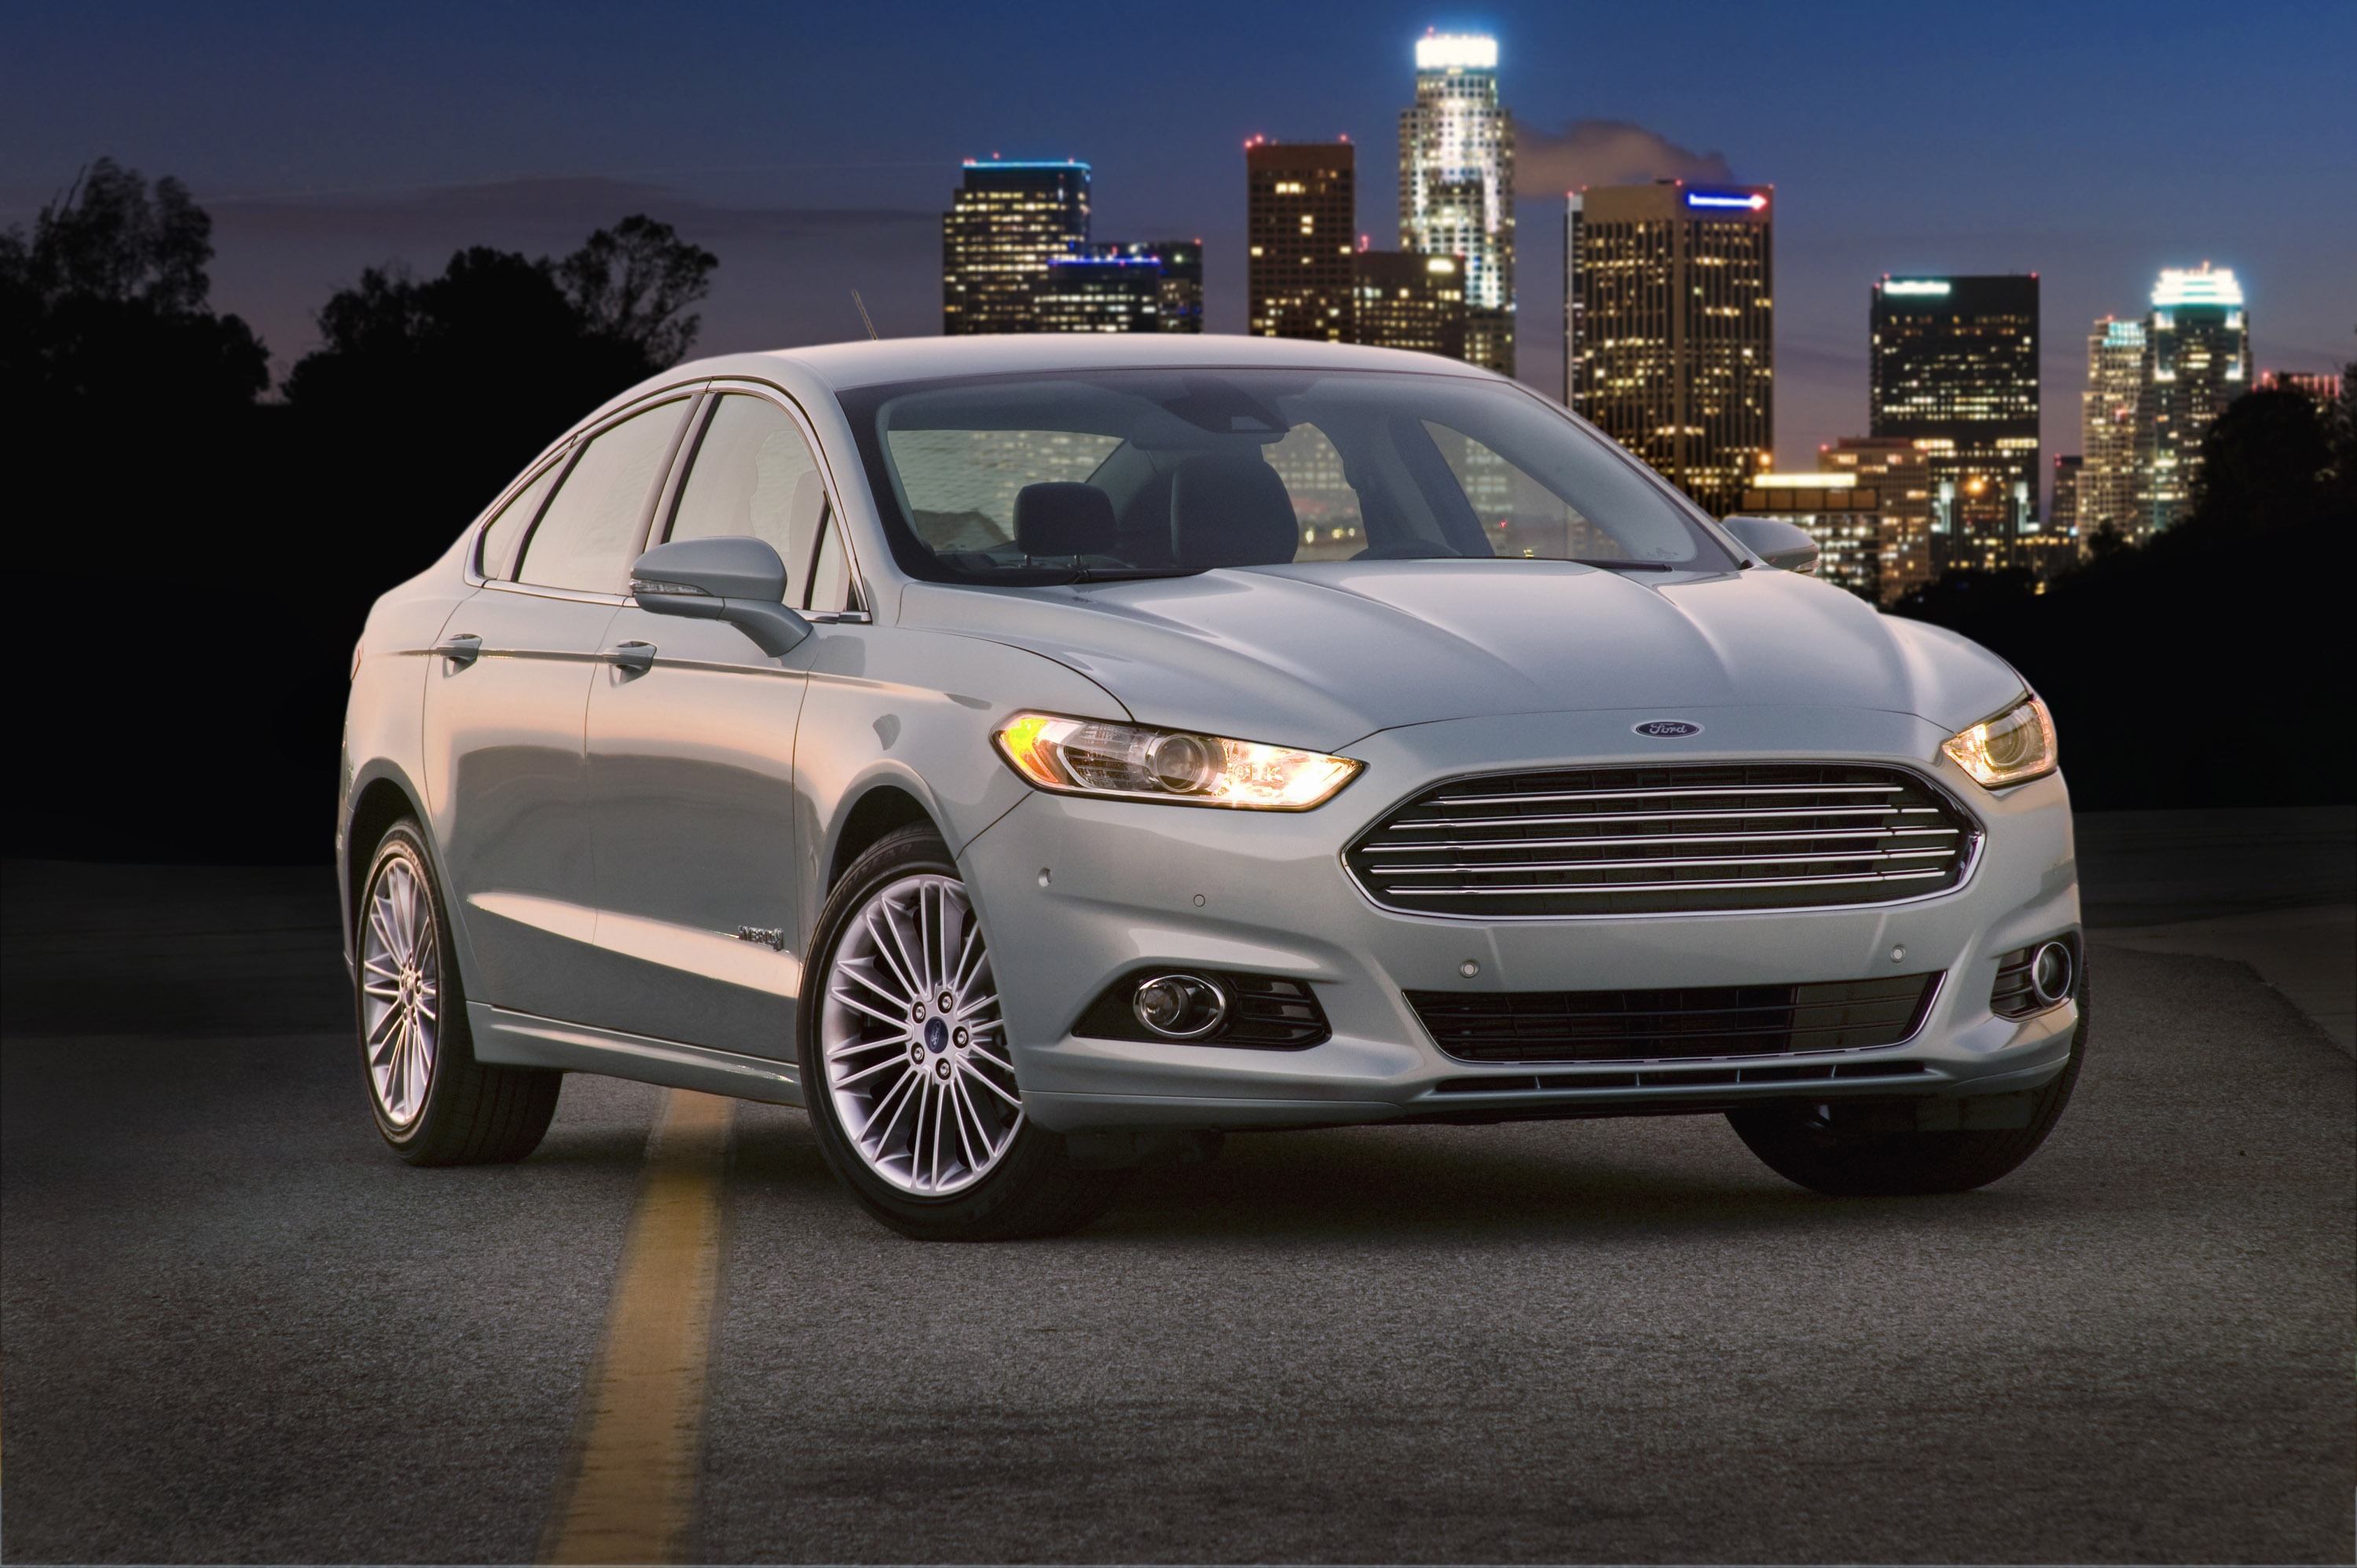 Ford Fusion Hybrid photo #1